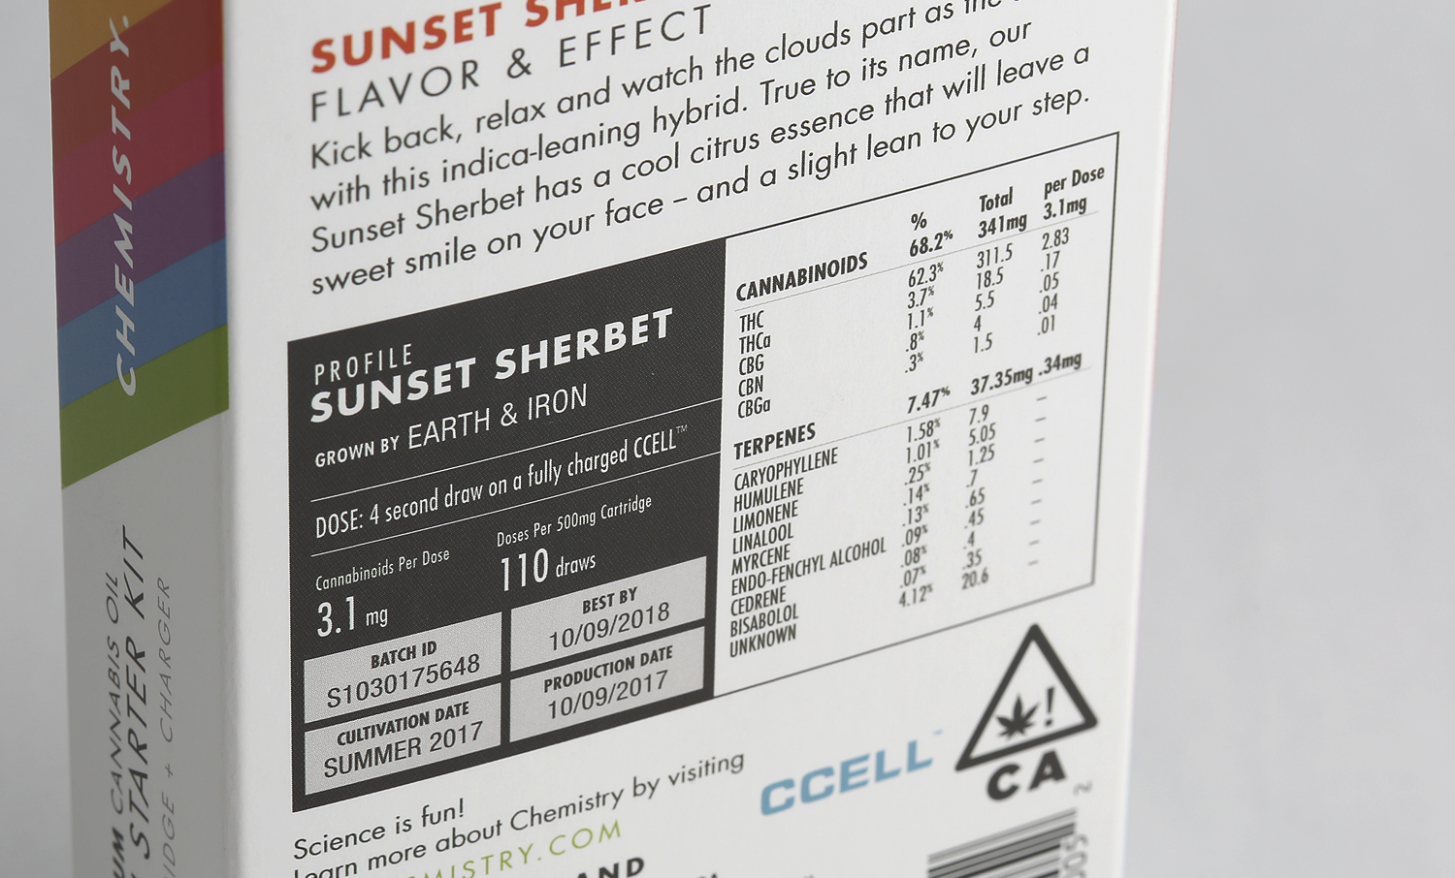 Here's an example of the cannabinoid + terpene breakdown on the back of this  Chemistry Cannabis Oil  box. As you can see, it's very high in THC (62.3%) and Caryophyllene (1.58%); This means this product would cause noticeable psychoactive and anti-pain effects.